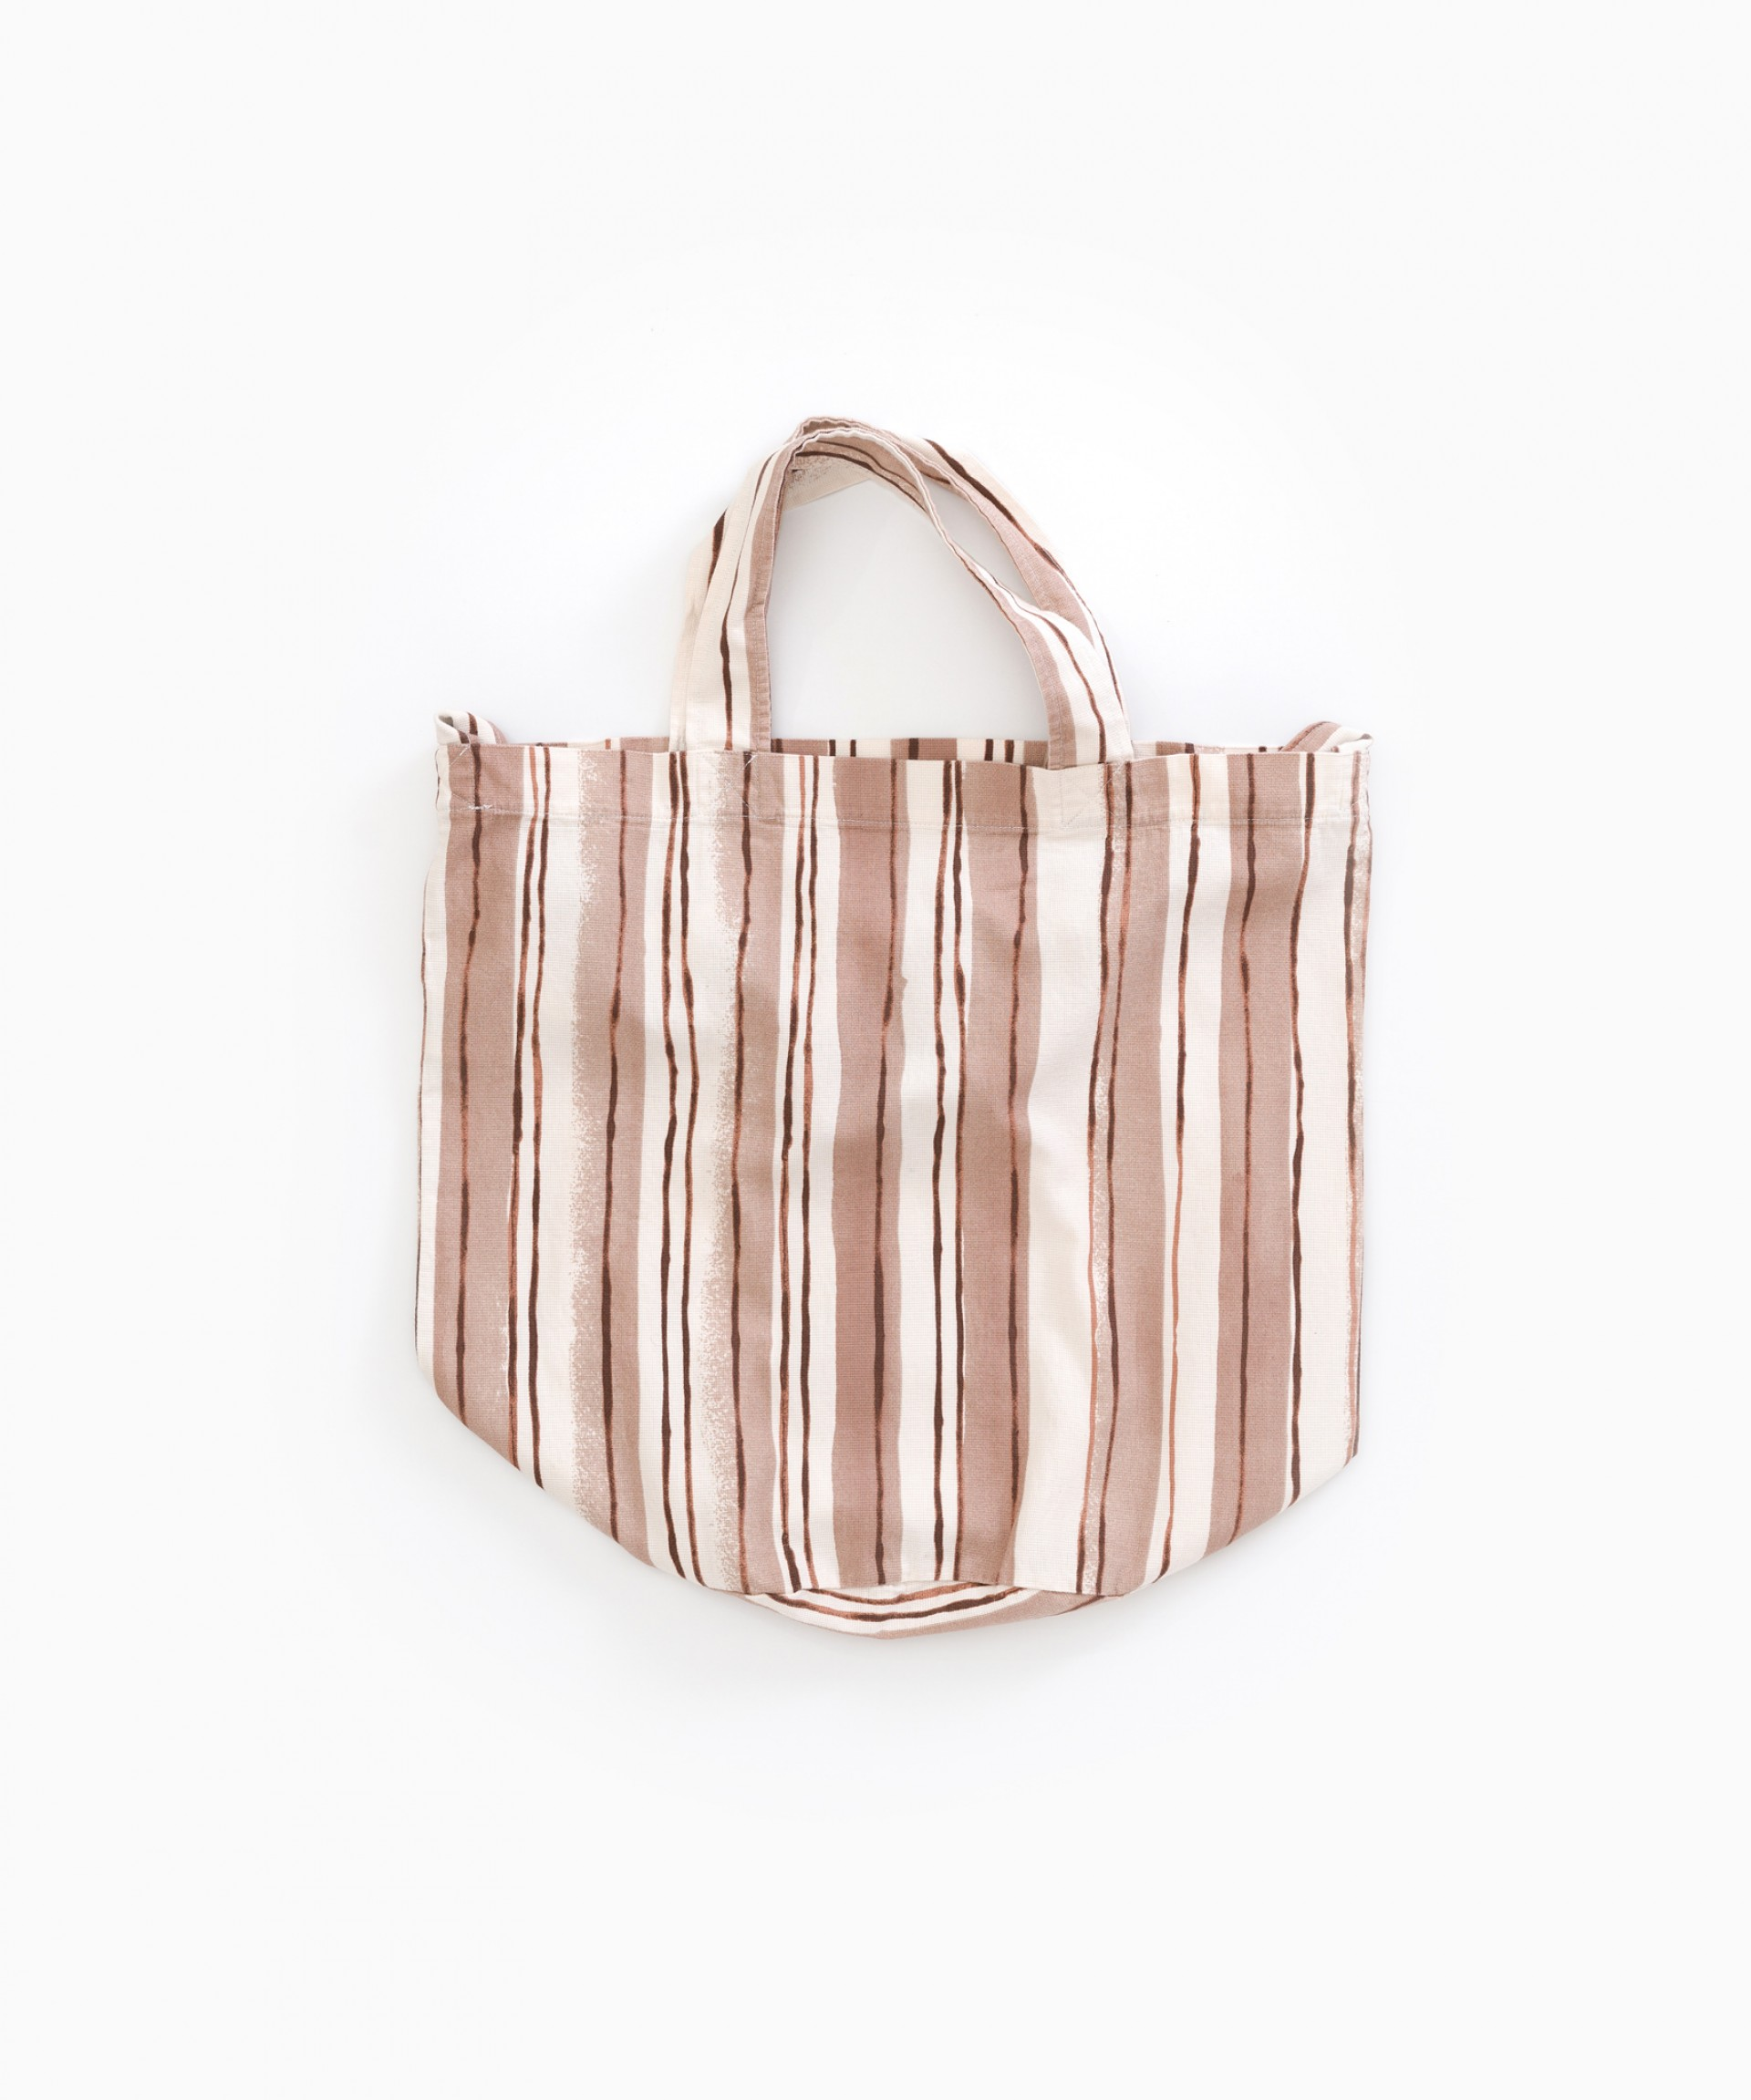 Twill bag with stripes | Weaving